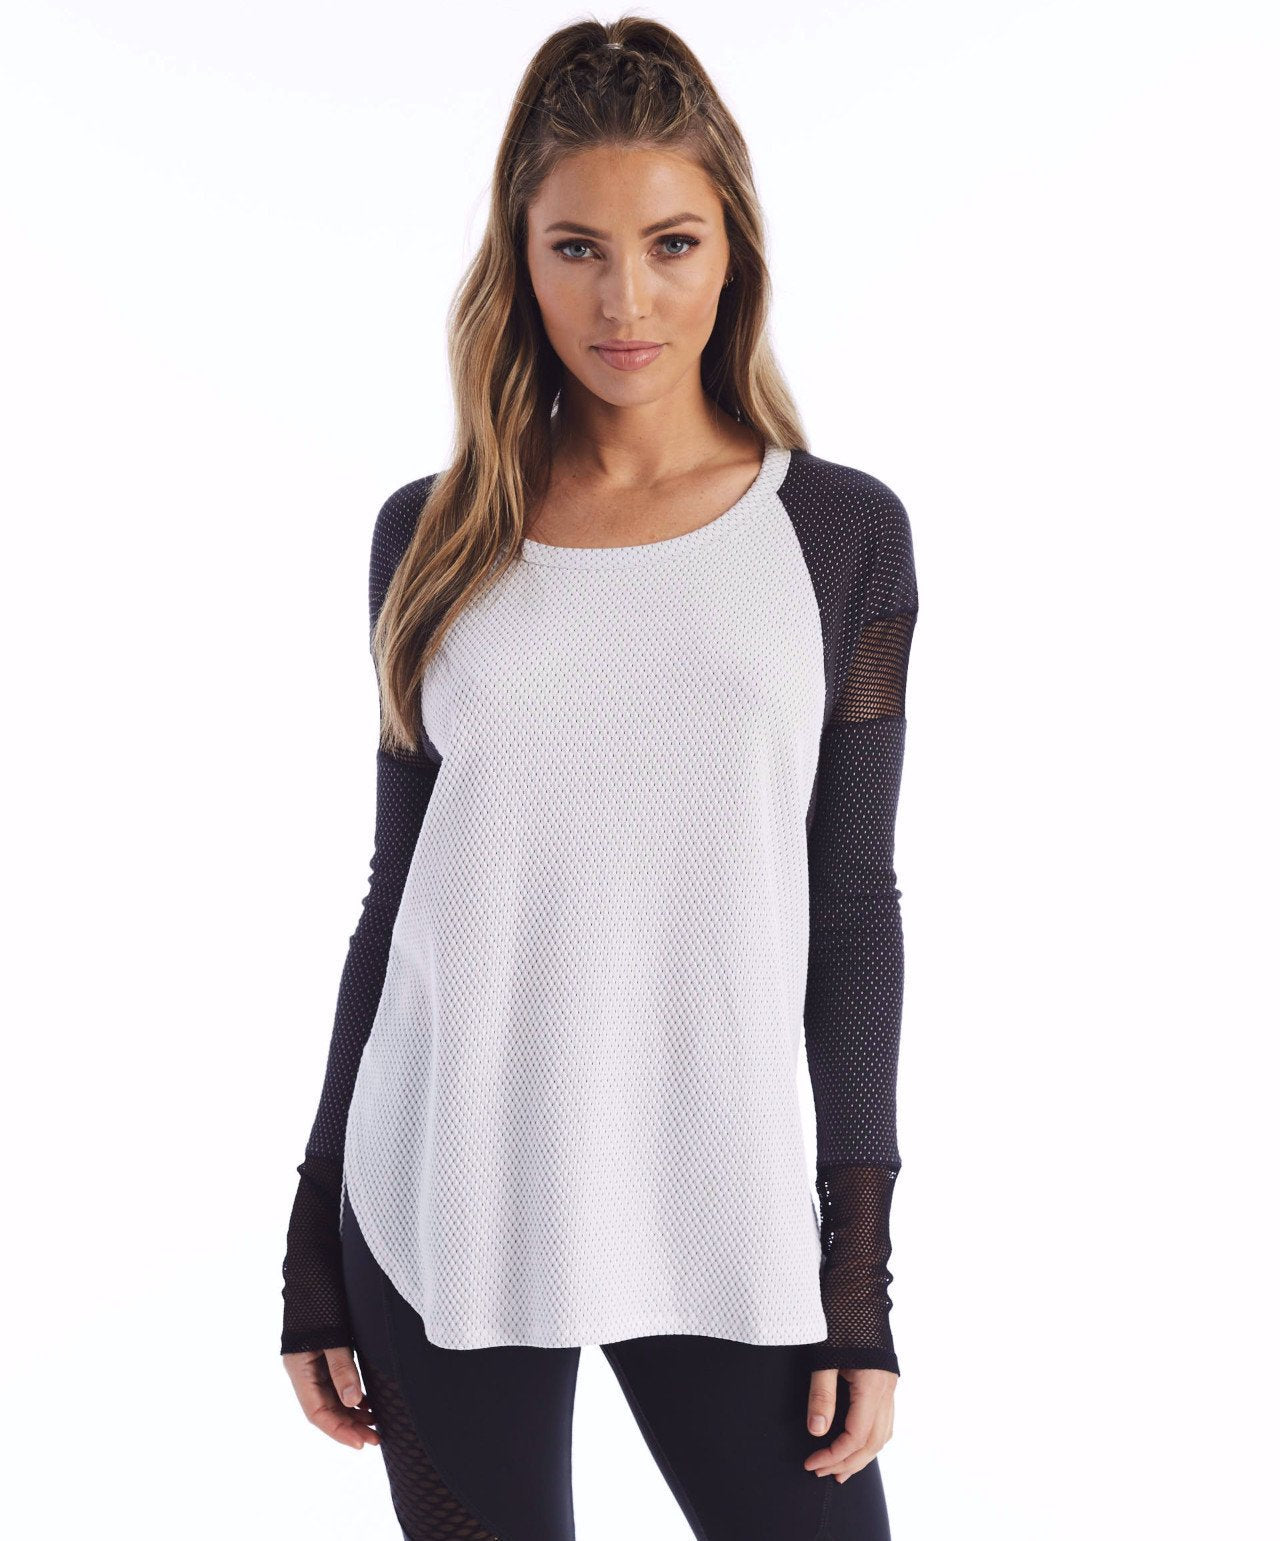 Purgos Long Sleeve - Optic White/Black Onyx Dot